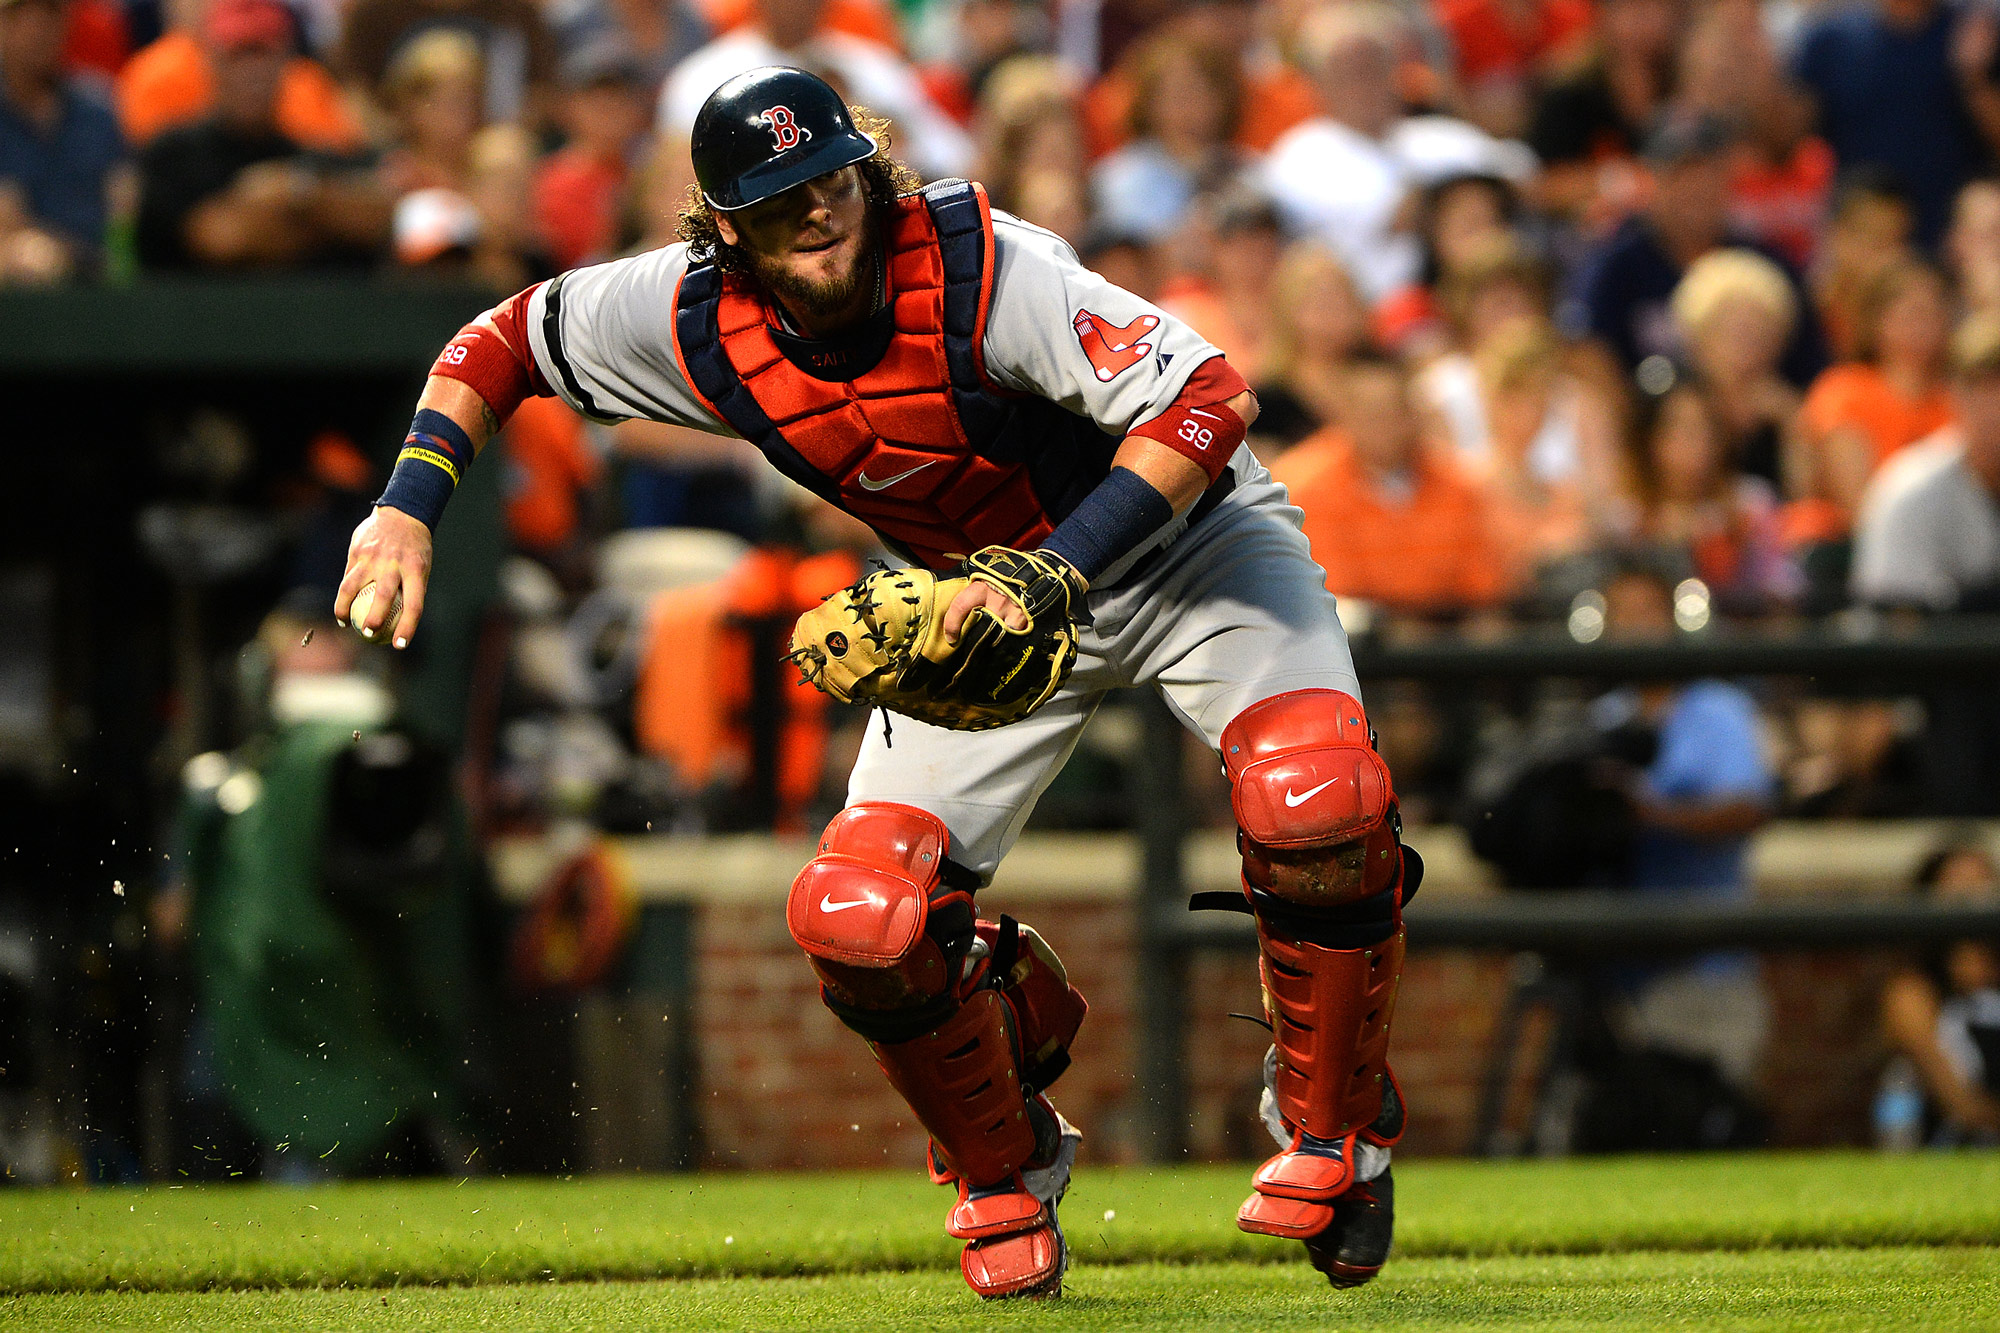 Boston Red Sox catcher Jarrod Saltalamaccia makes a routine out at first during a game against the Baltimore Orioles on July 27, 2013 at Oriole Park at Camden Yards in Baltimore, Md.